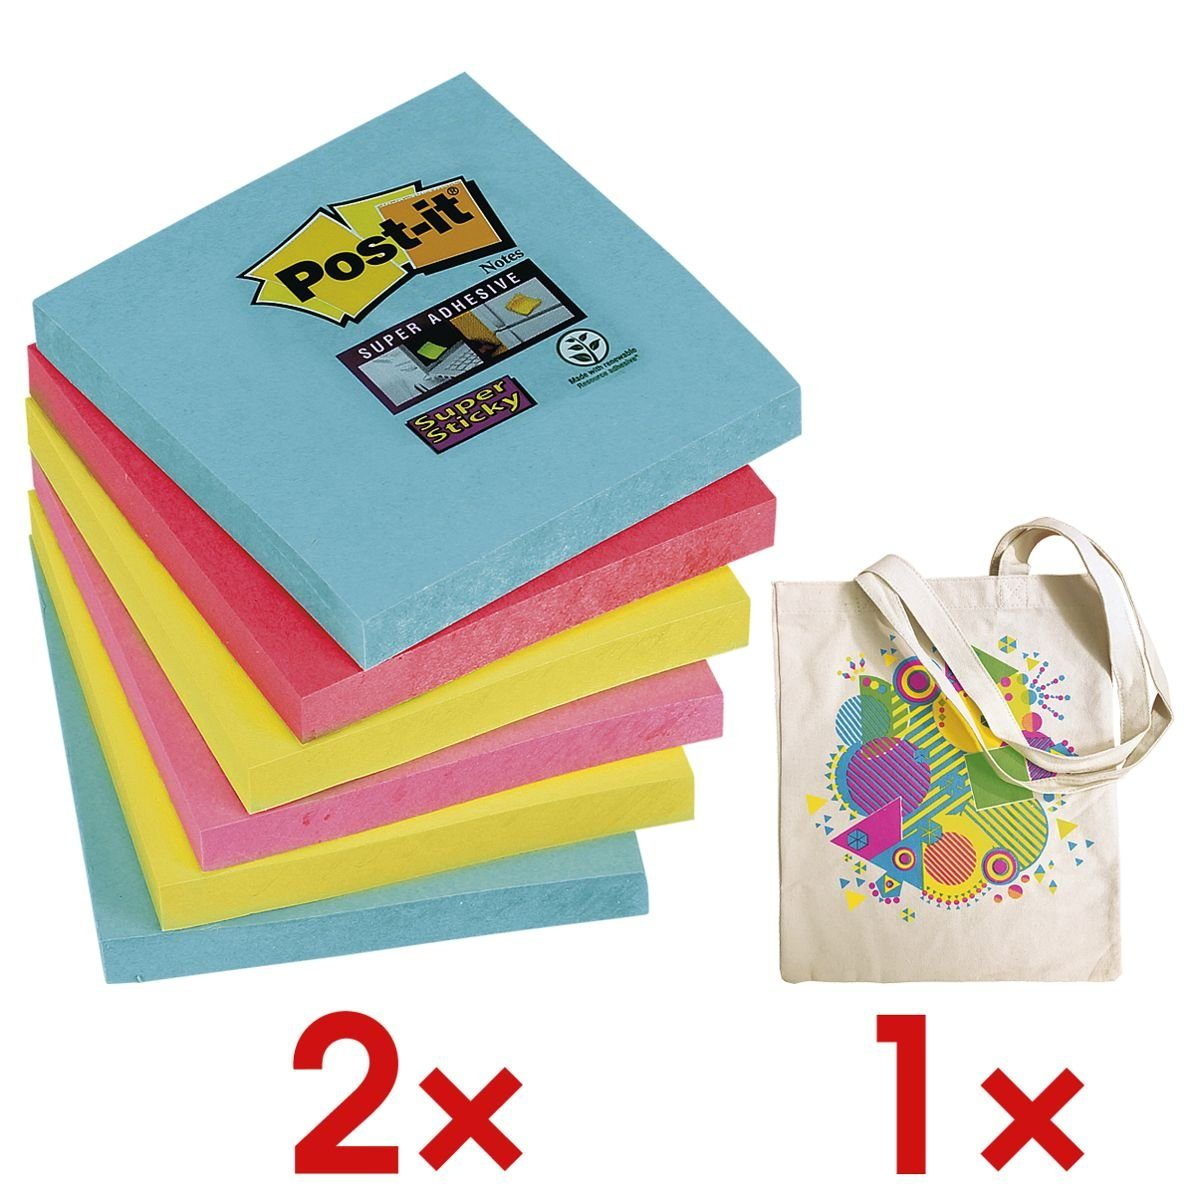 Post-it Super Sticky 2x 6er-Set Haftnotizblöcke inkl. 1x Stofftasche »Miami« 1 Set